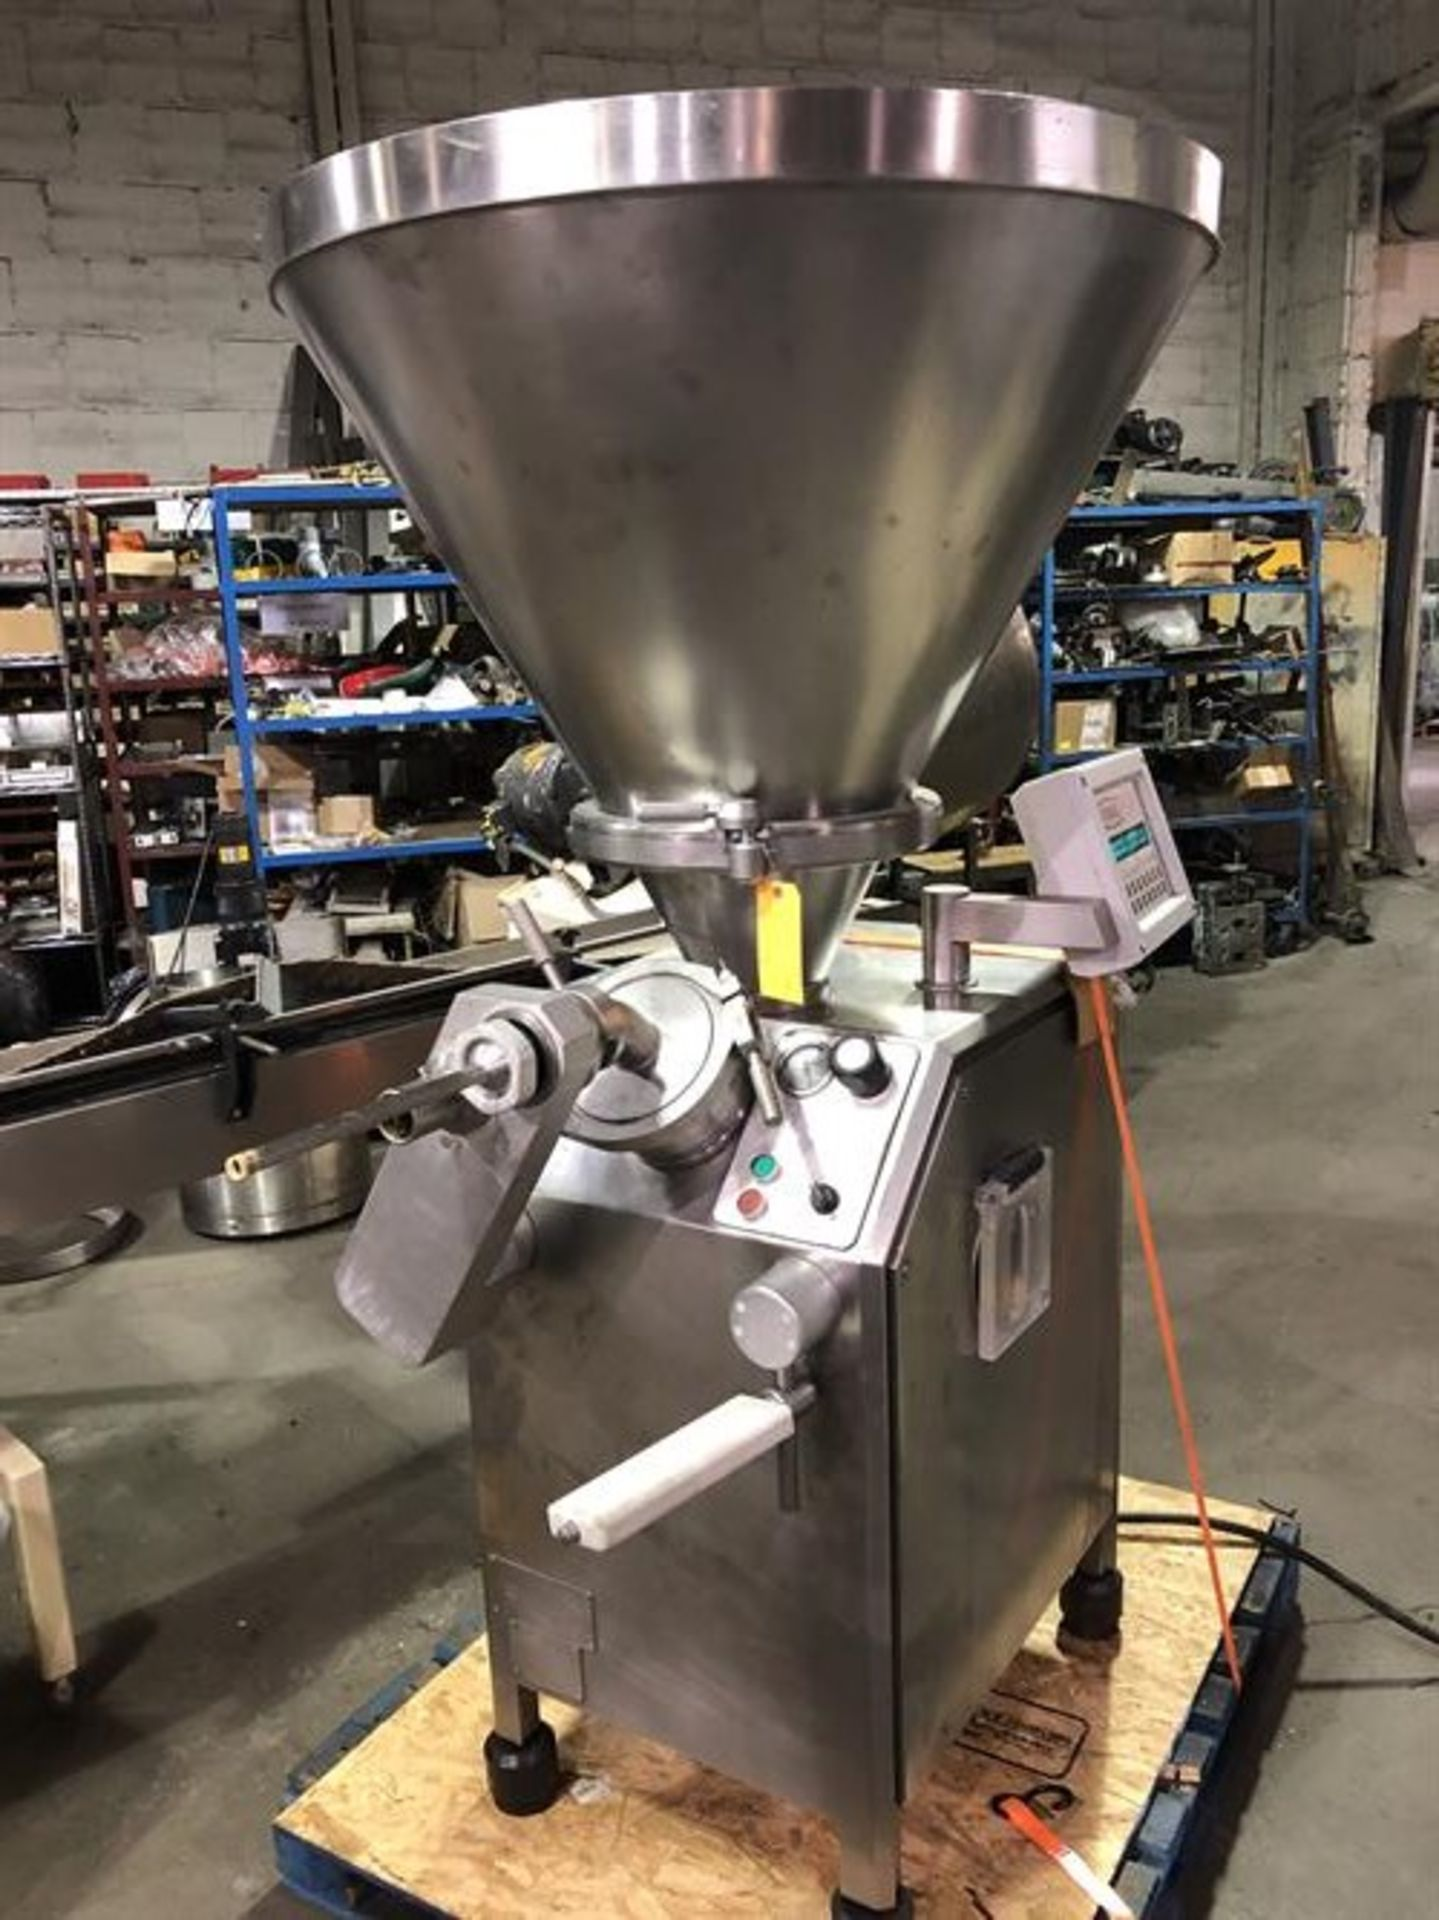 Vemag Robot 500 Stainless Steel Vacuum Stuffer - Machine has been completely reconditioned - PC - Image 6 of 31